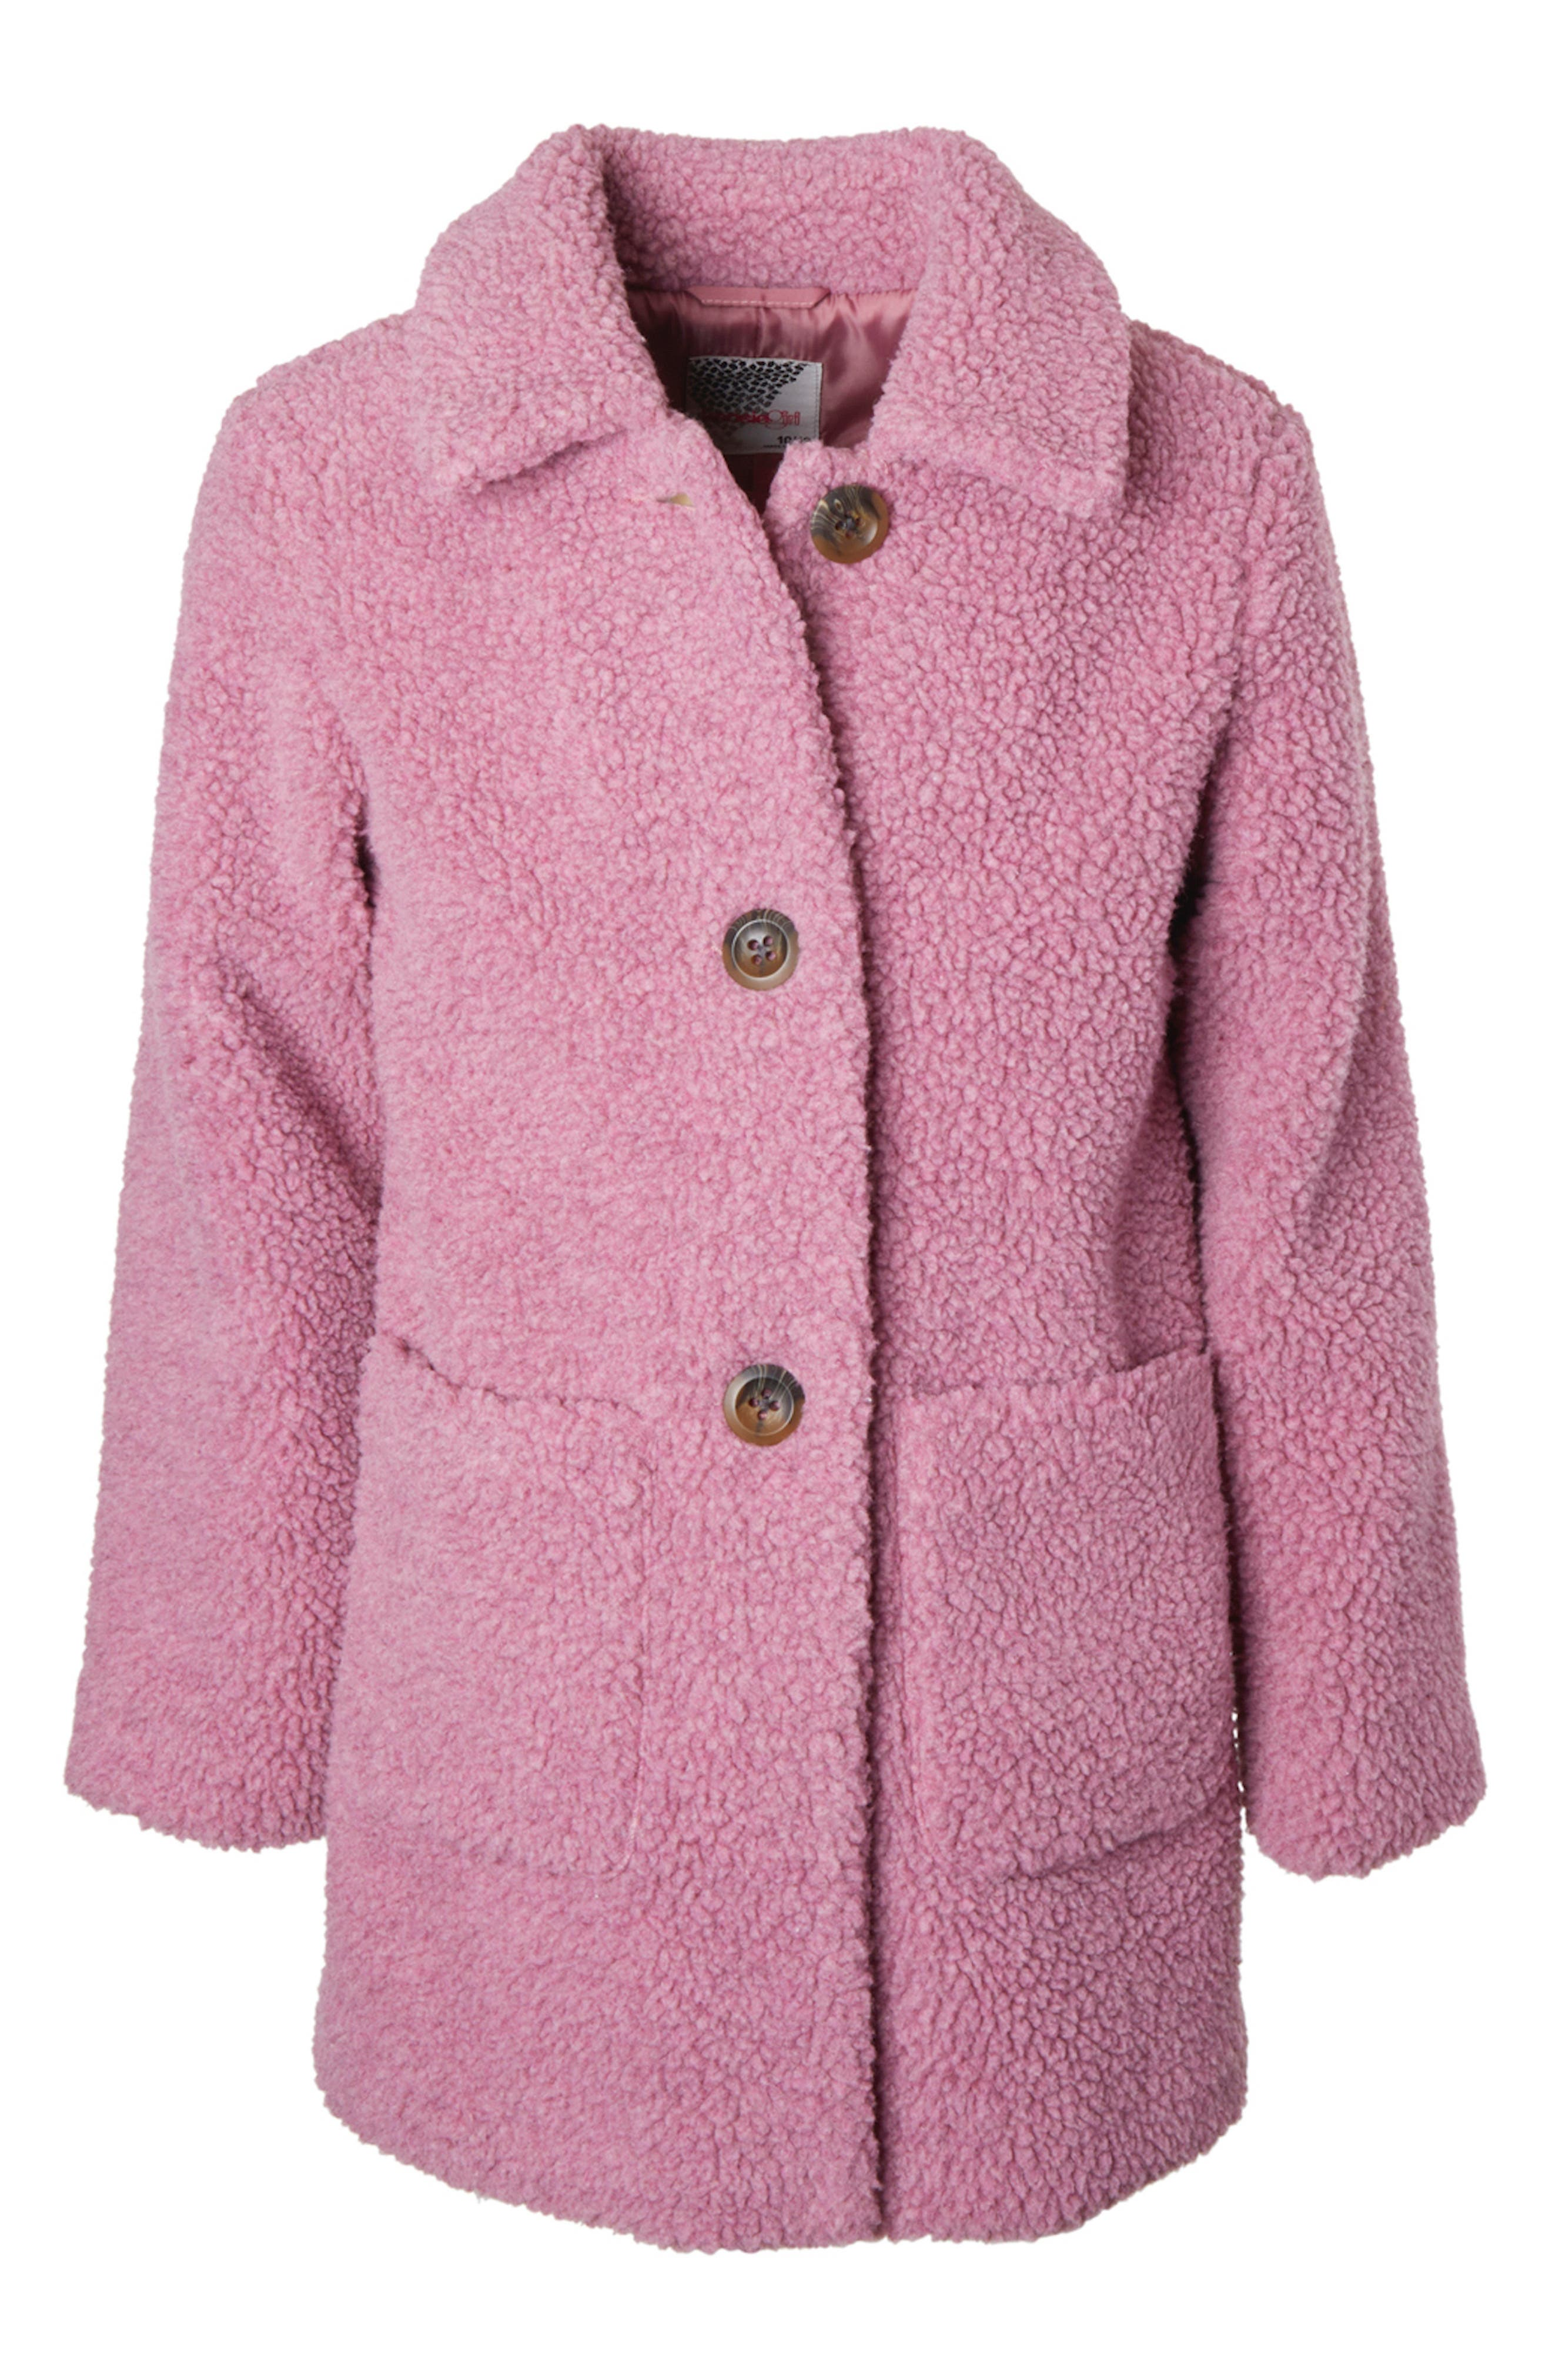 The teddy coat is the cozy look and feel she\\\'ll want as the temperatures dip, and this button-front style with roomy pockets is a wearable hug she\\\'ll love. Style Name: Kensie Girl Teddy Long Jacket (Big Girl). Style Number: 5898076. Available in stores.